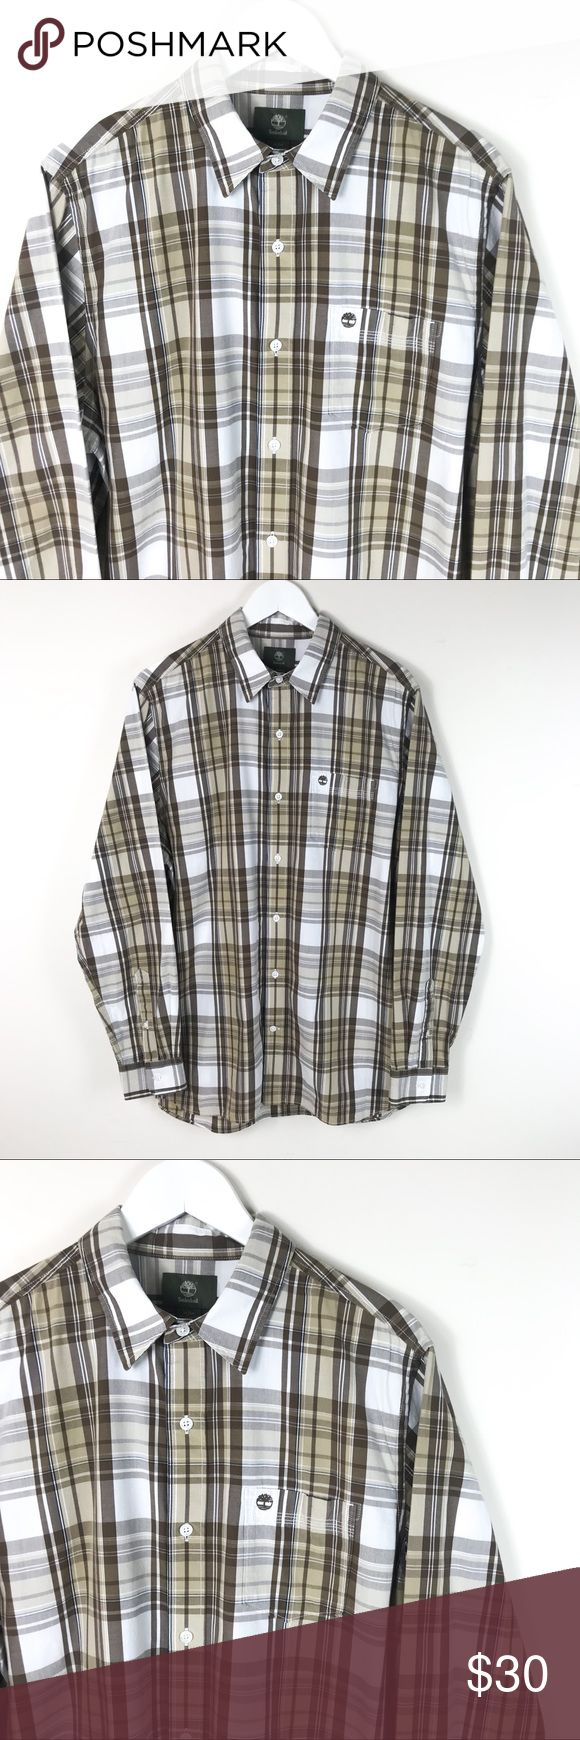 Timberland Men's Long Sleeve Brown Plaid Shirt Timberland Men's Long Sleeve Brown Plaid Shirt Size Medium   This Timberland shirt is used, but in excellent condition. Timberland Shirts Casual Button Down Shirts